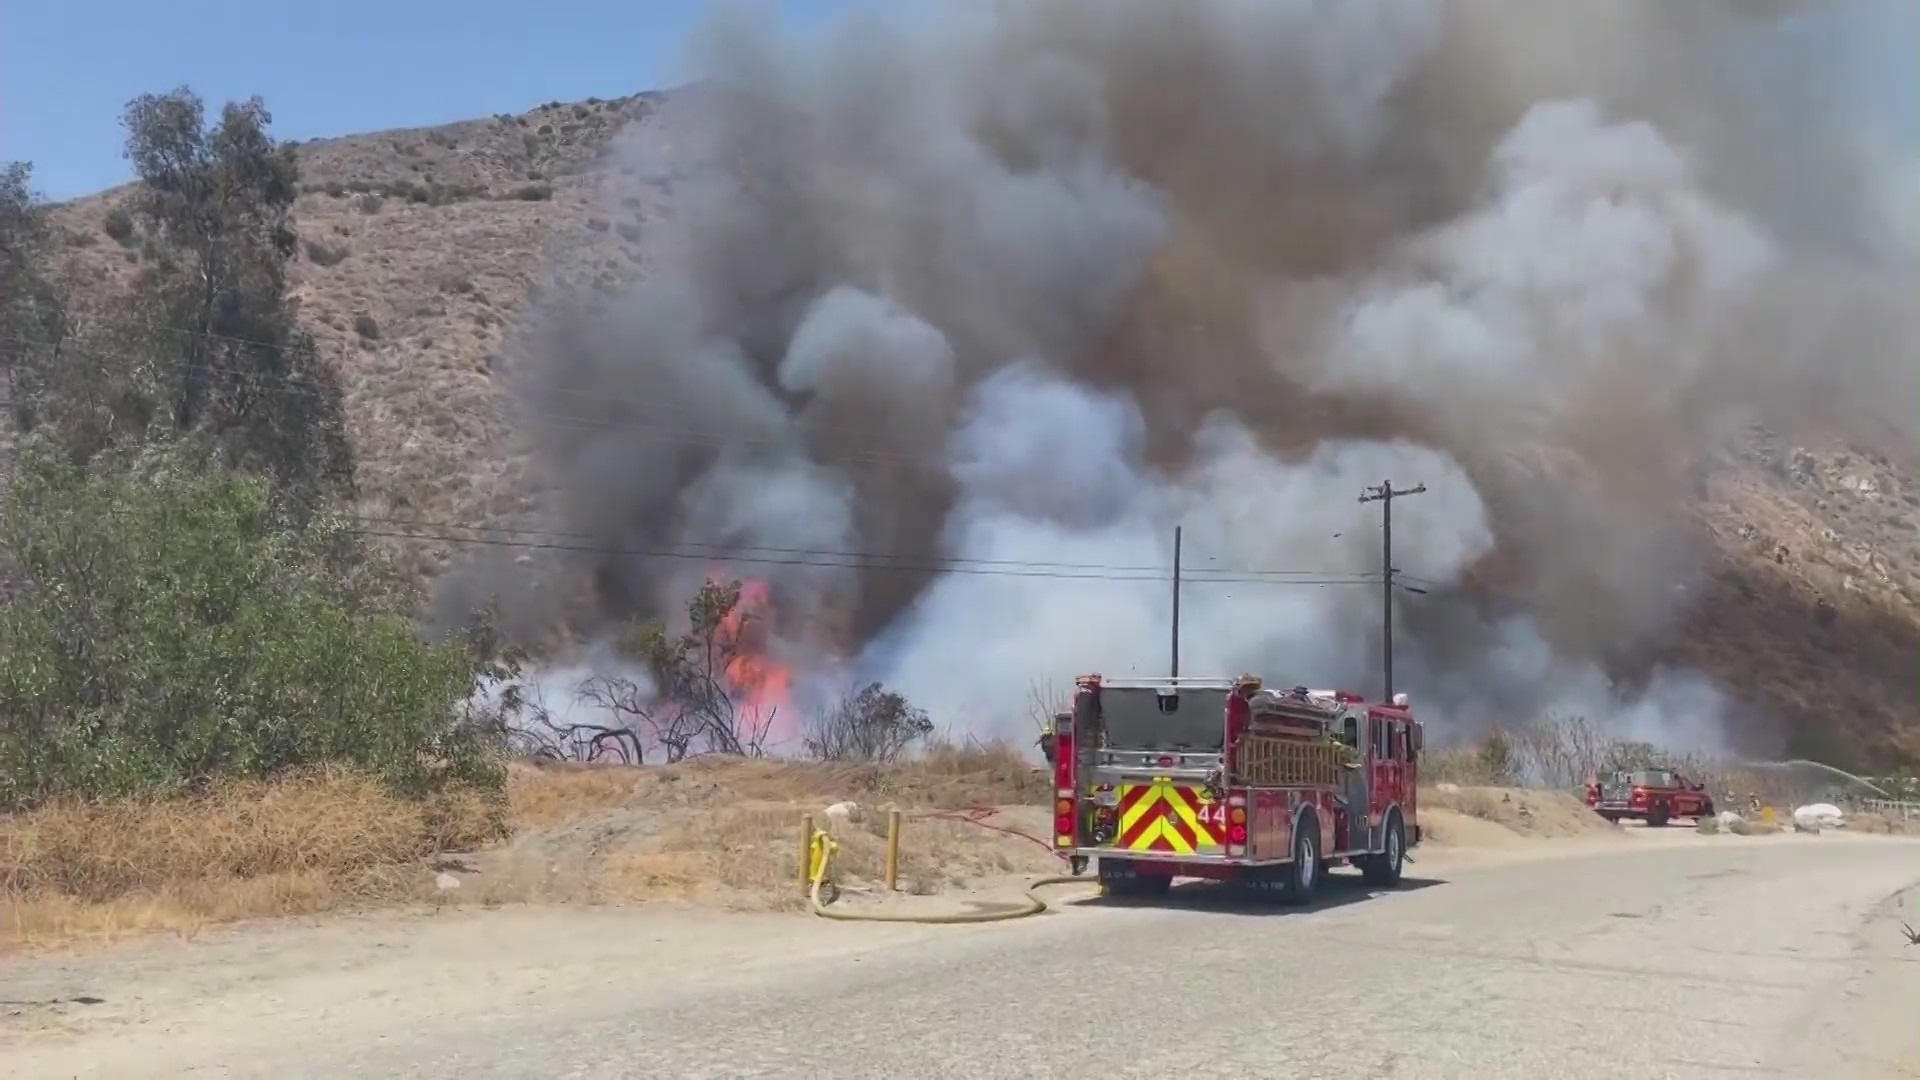 The Hungry Fire burns in Gorman after erupting on July 31. (KTLA)